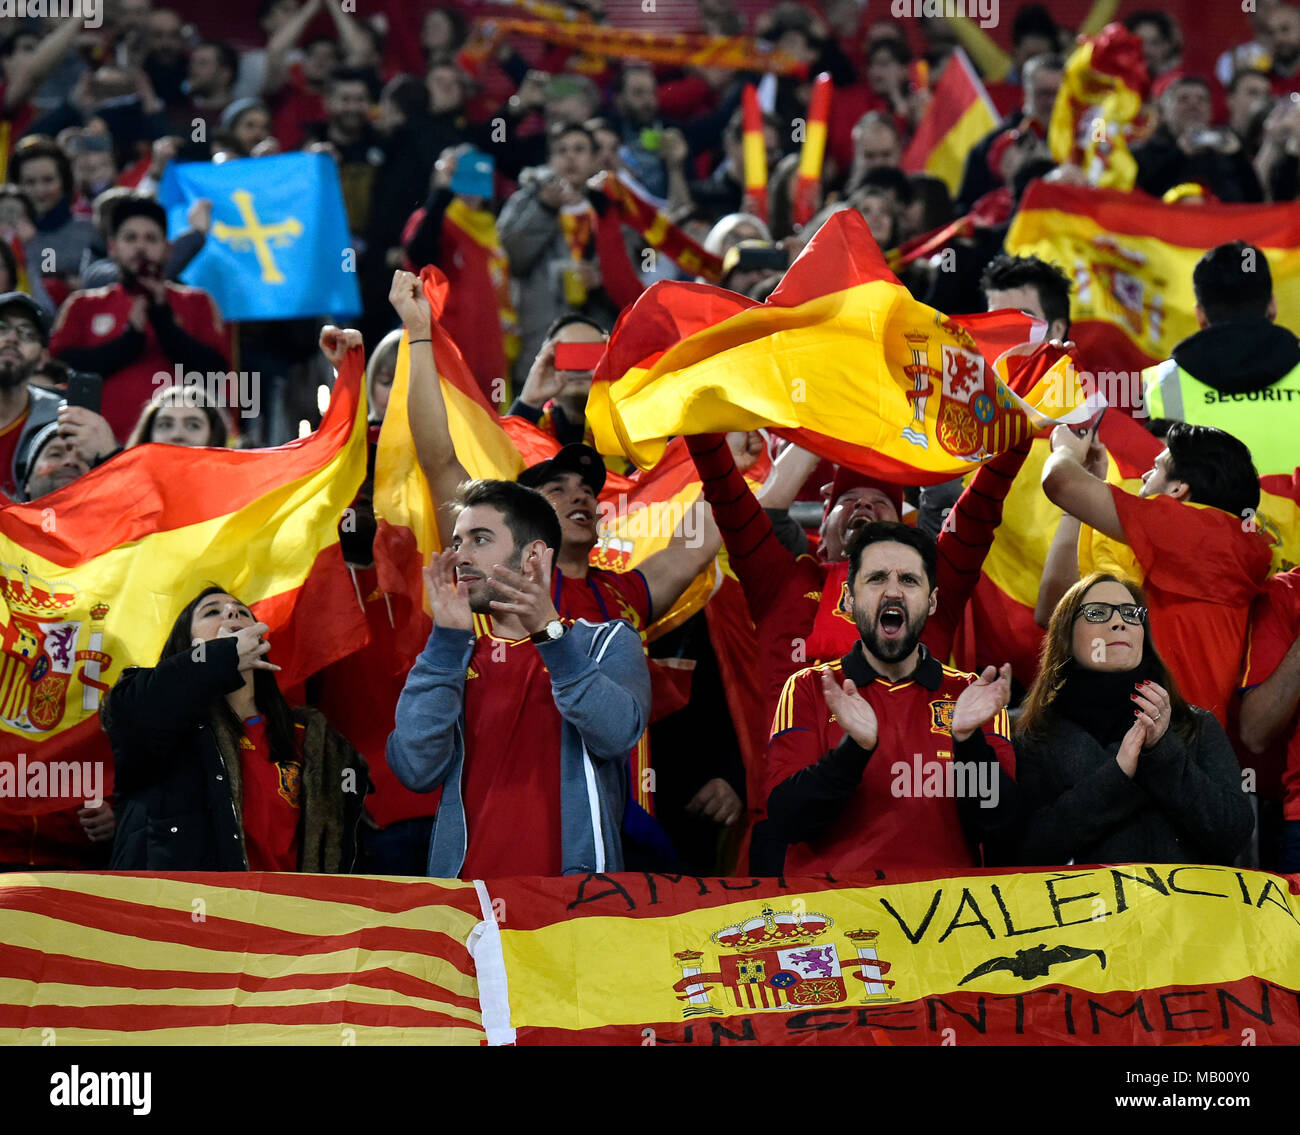 Cheers from Spanish fans during football match, Esprit Arena, Düsseldorf, North Rhine-Westphalia, Germany Stock Photo